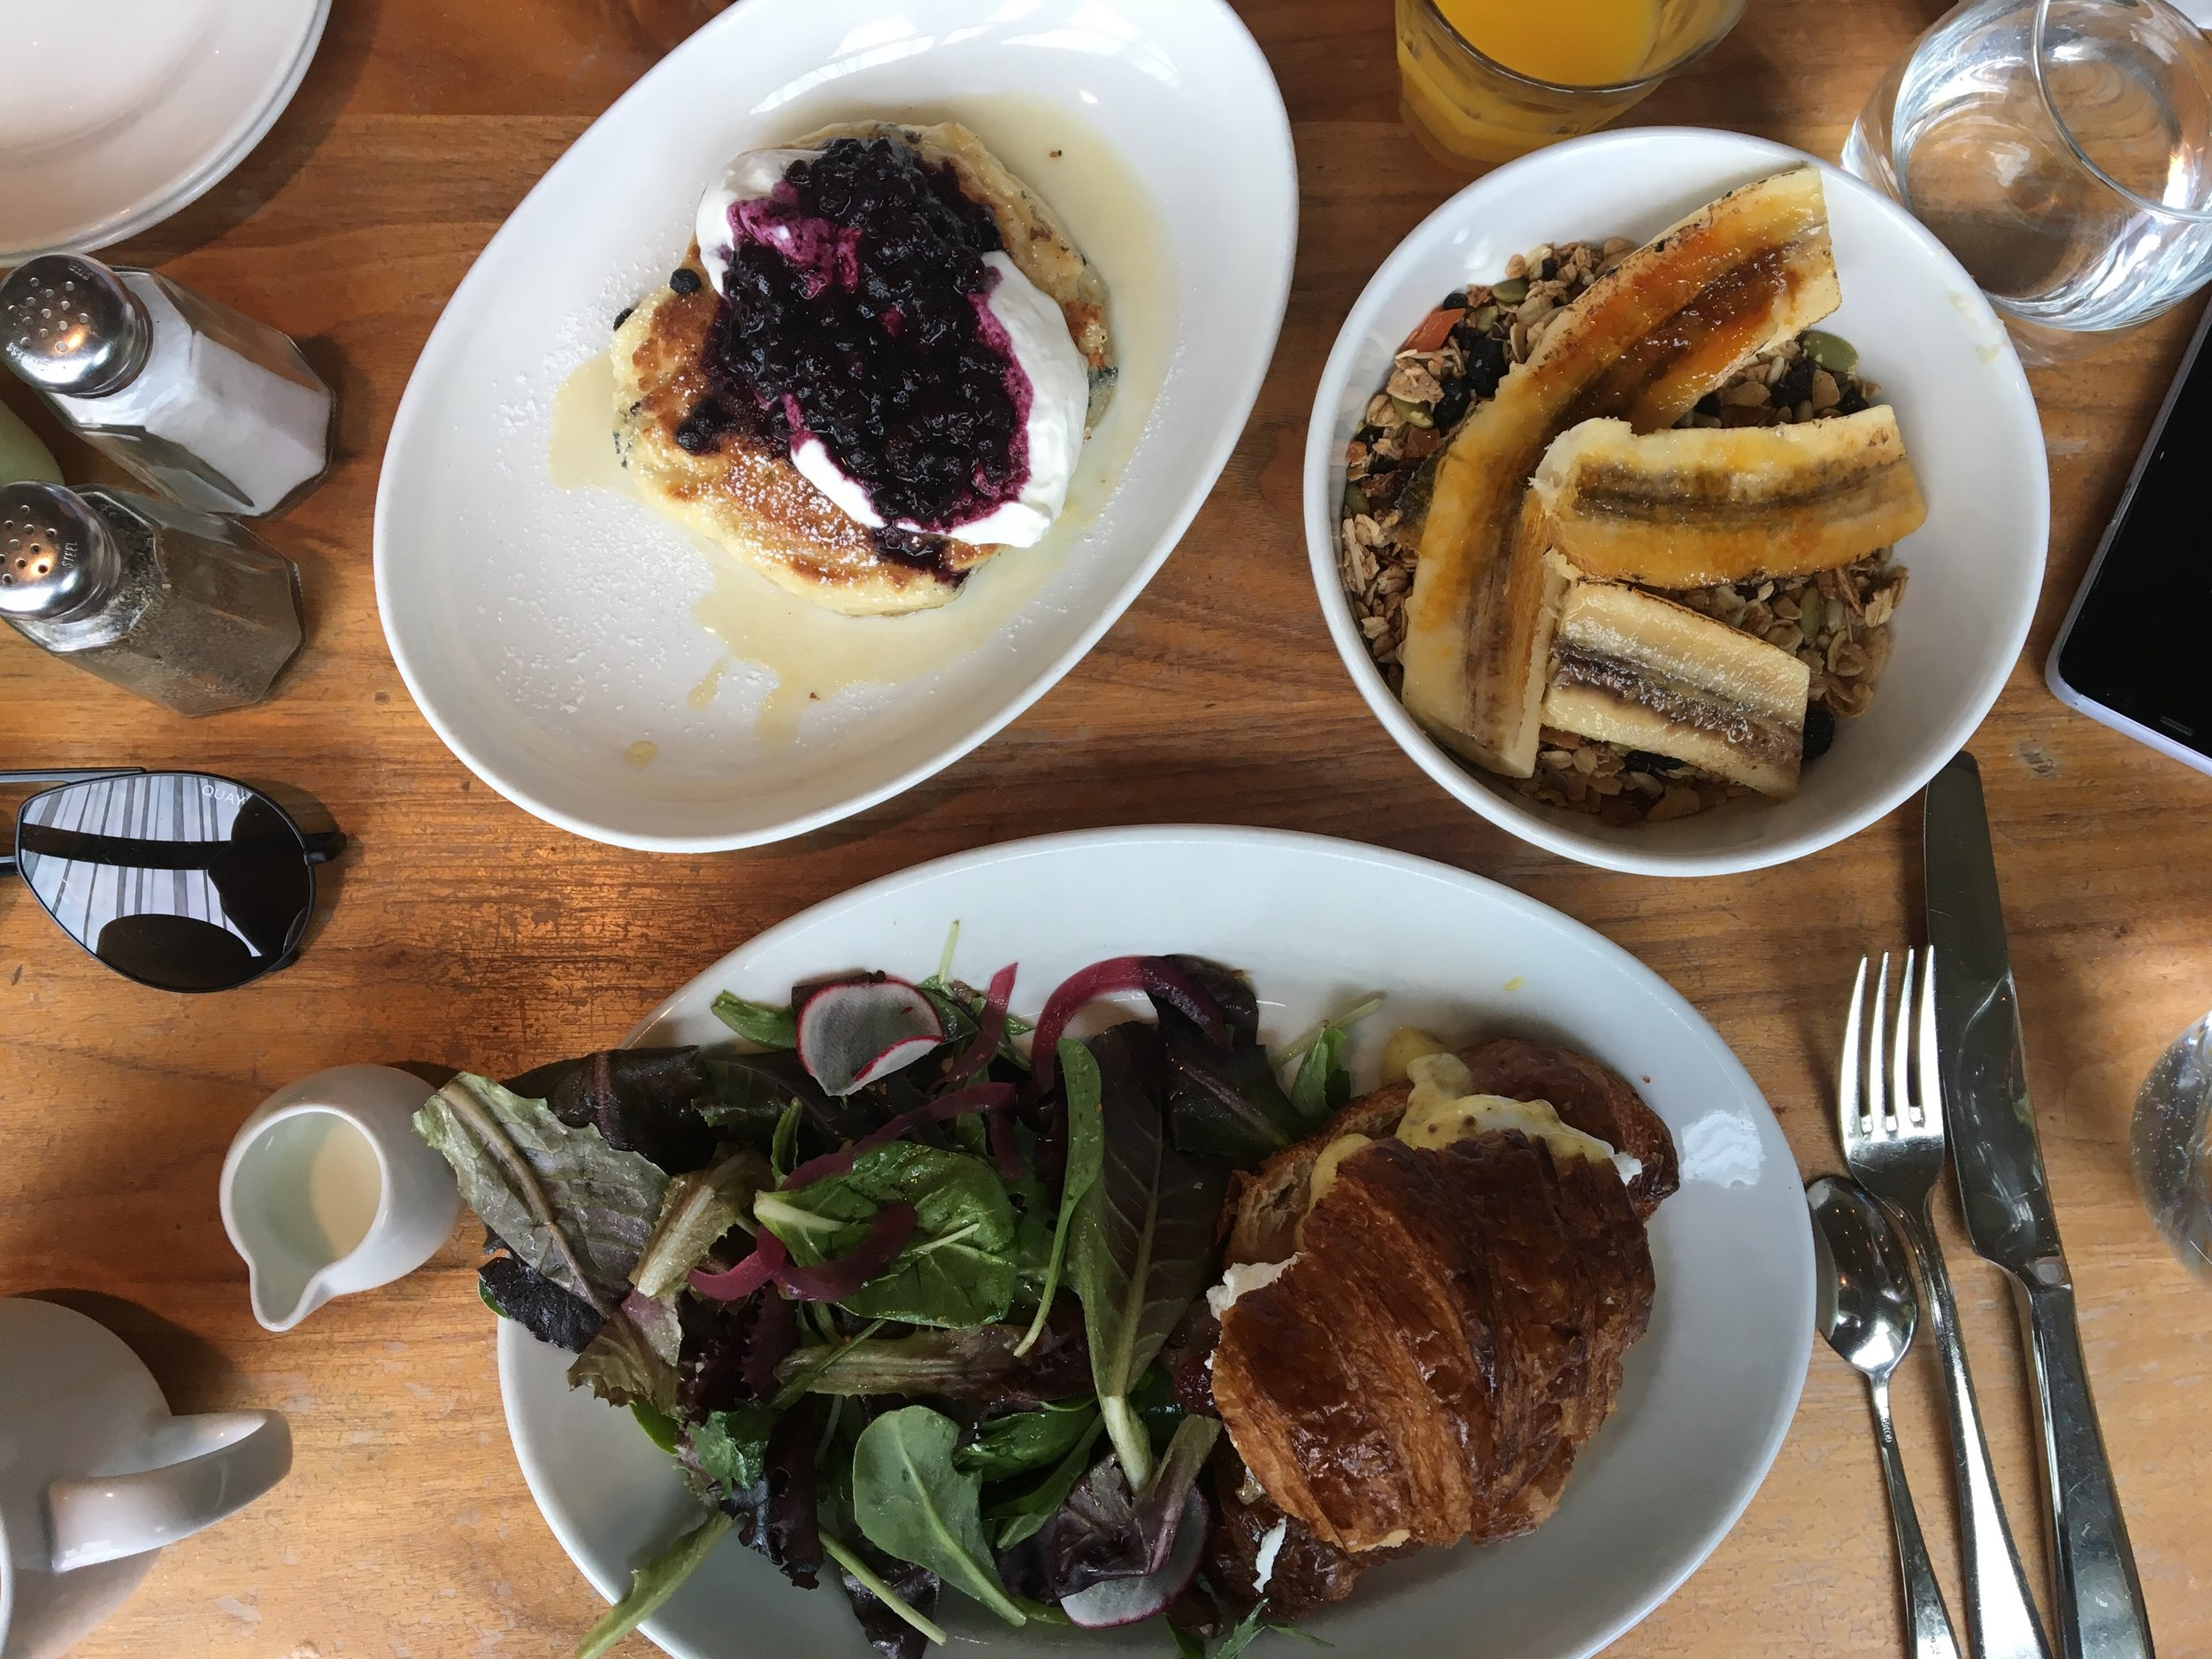 For a cool brunch spot with amazing options, make sure to stop by  Mildred's Temple Kitchen. Mildred's is known for their pancakes, which are super fluffy and almost cake-like. We also got the crunchy granola and veda's choice.